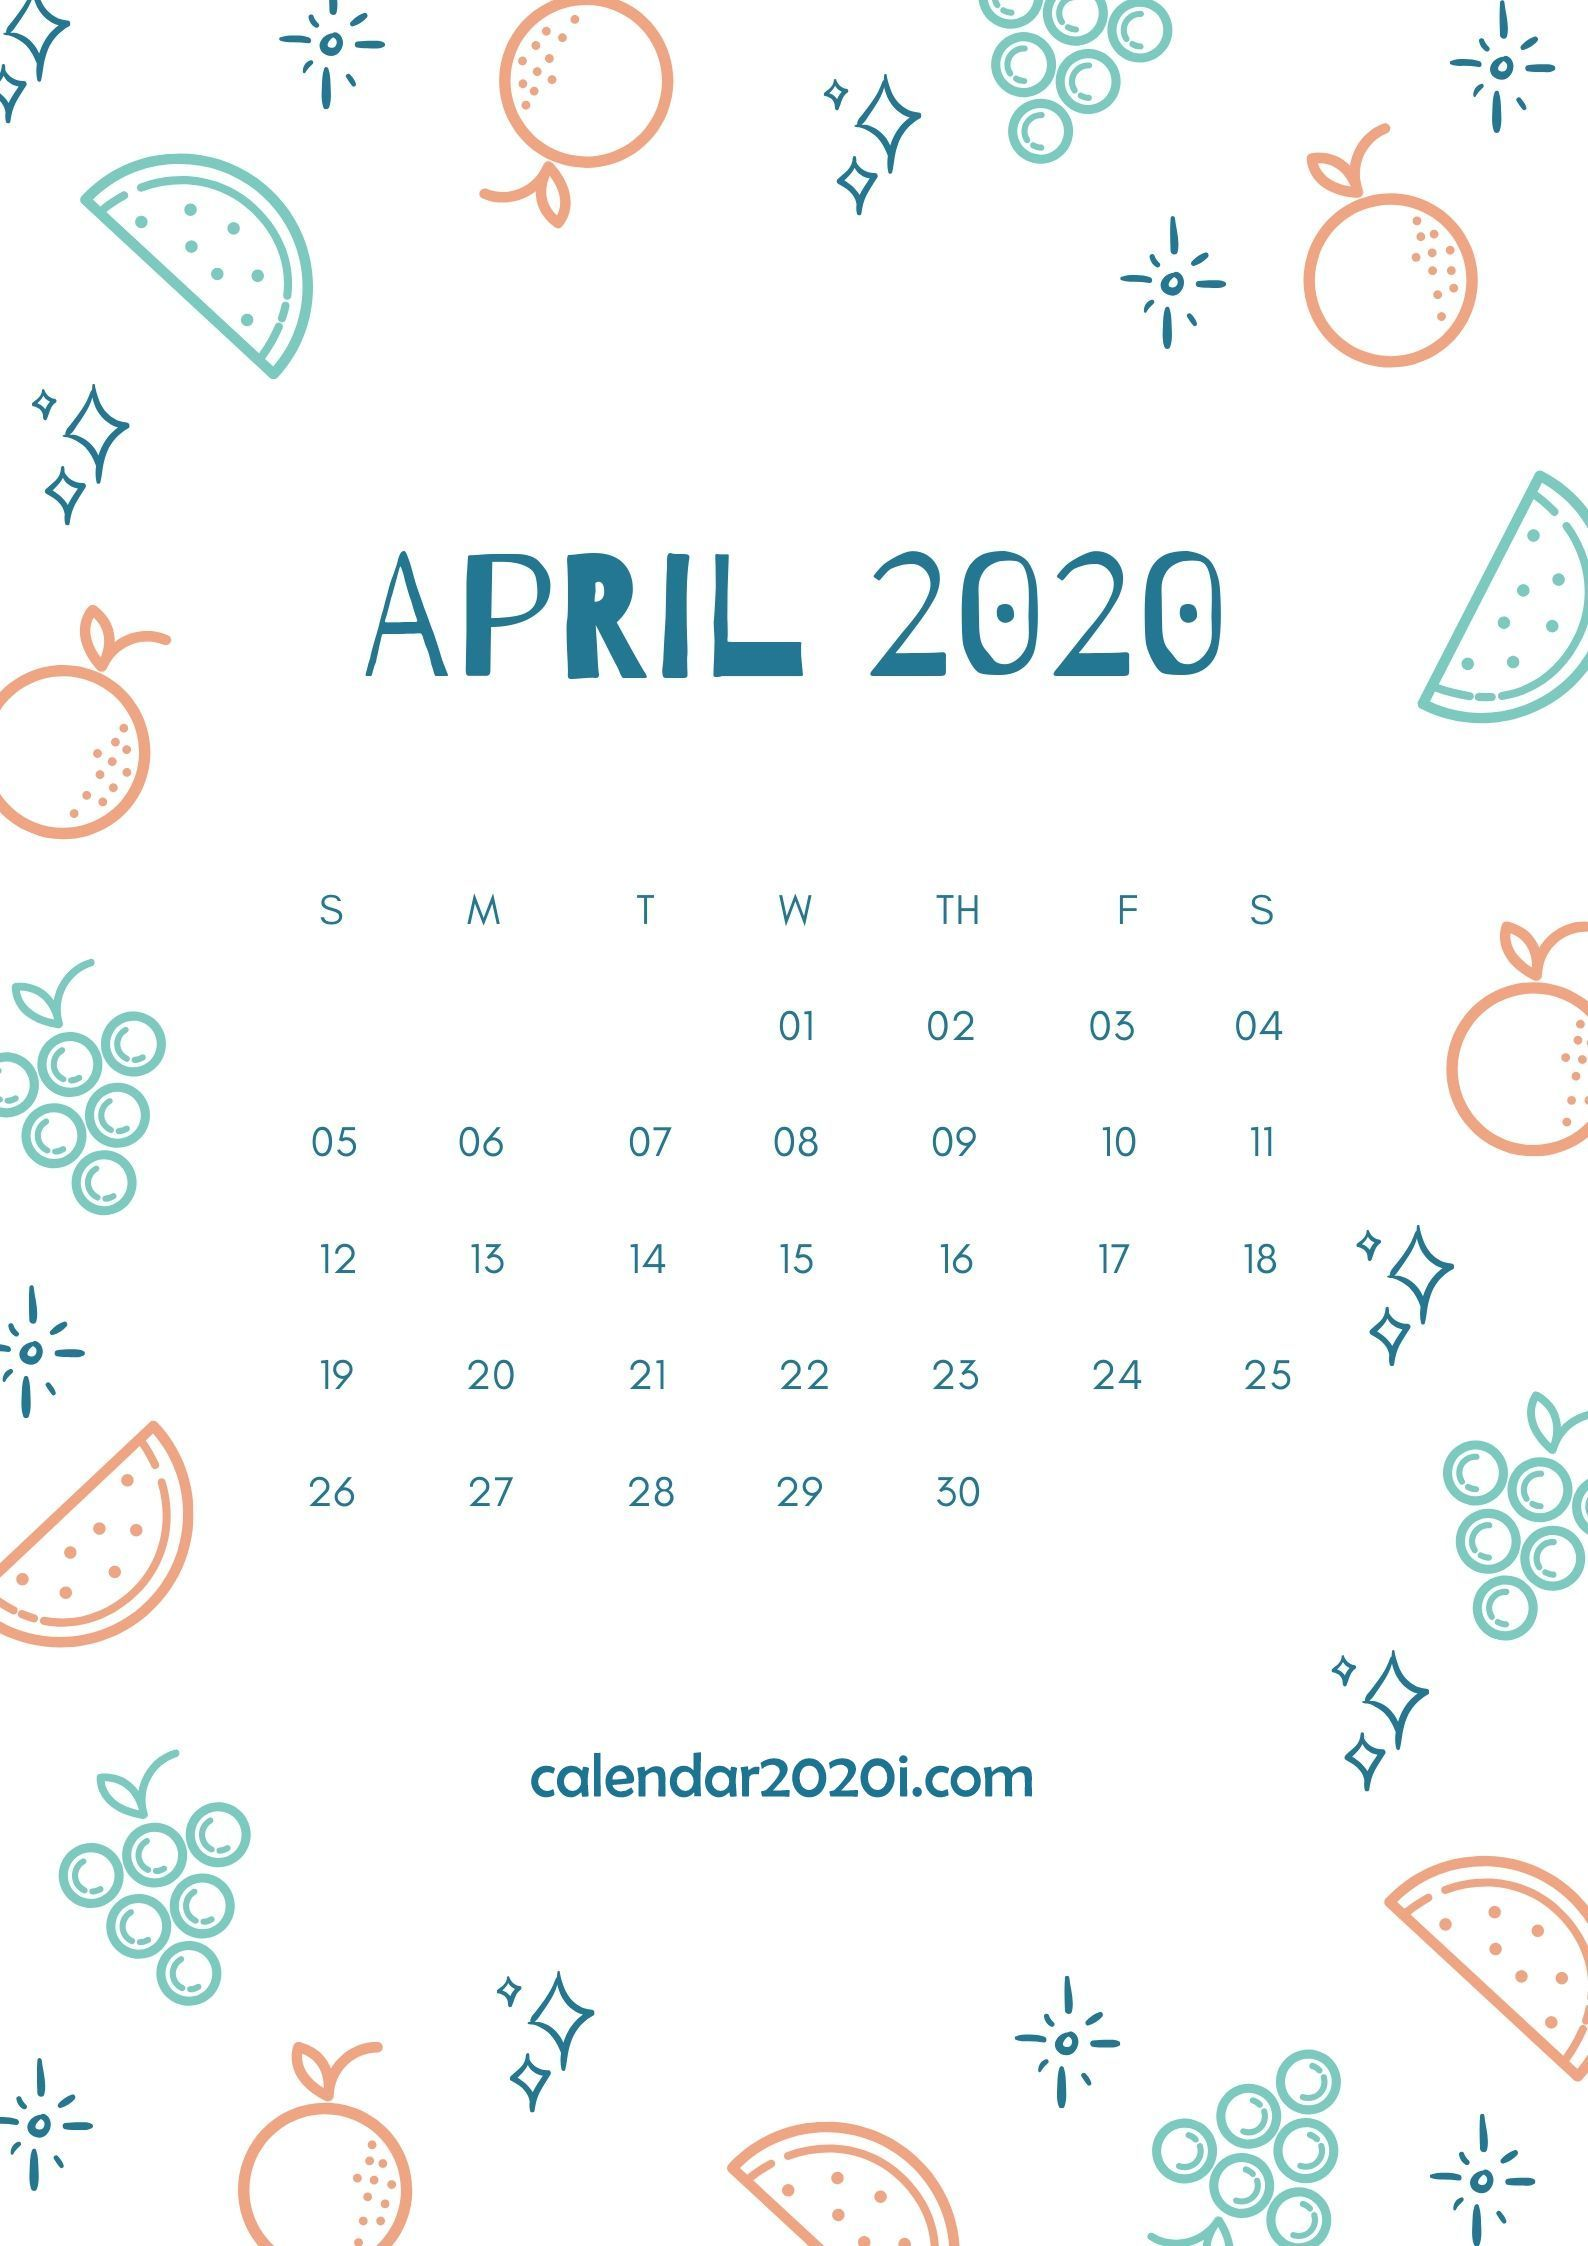 April 2020 Wall Calendar Printable Calendar wallpaper Calendar 1588x2246